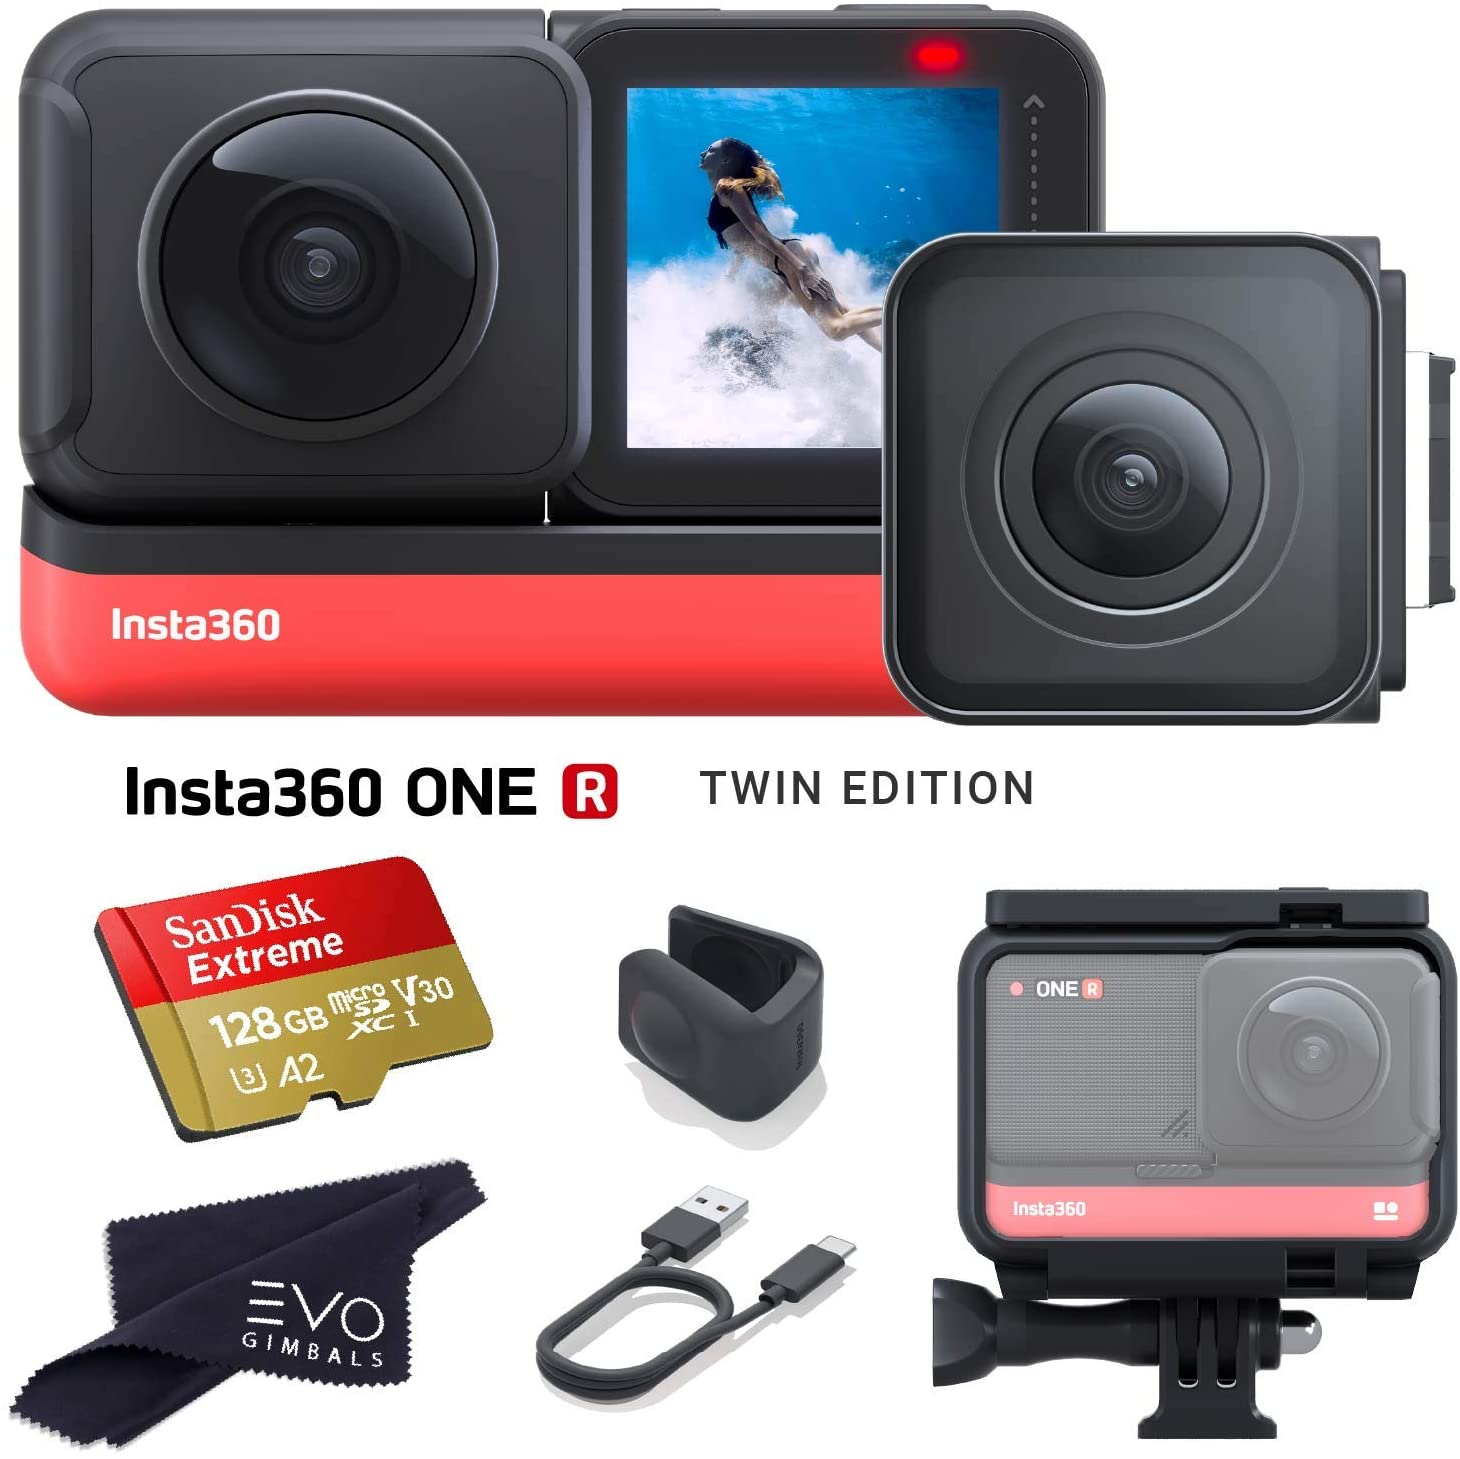 Insta360 ONE R Twin Edition - Super 5.7K Dual-Lens 360 Camera + 4K Wide Angle 60FPS with 128GB Memory Card (2 Items)